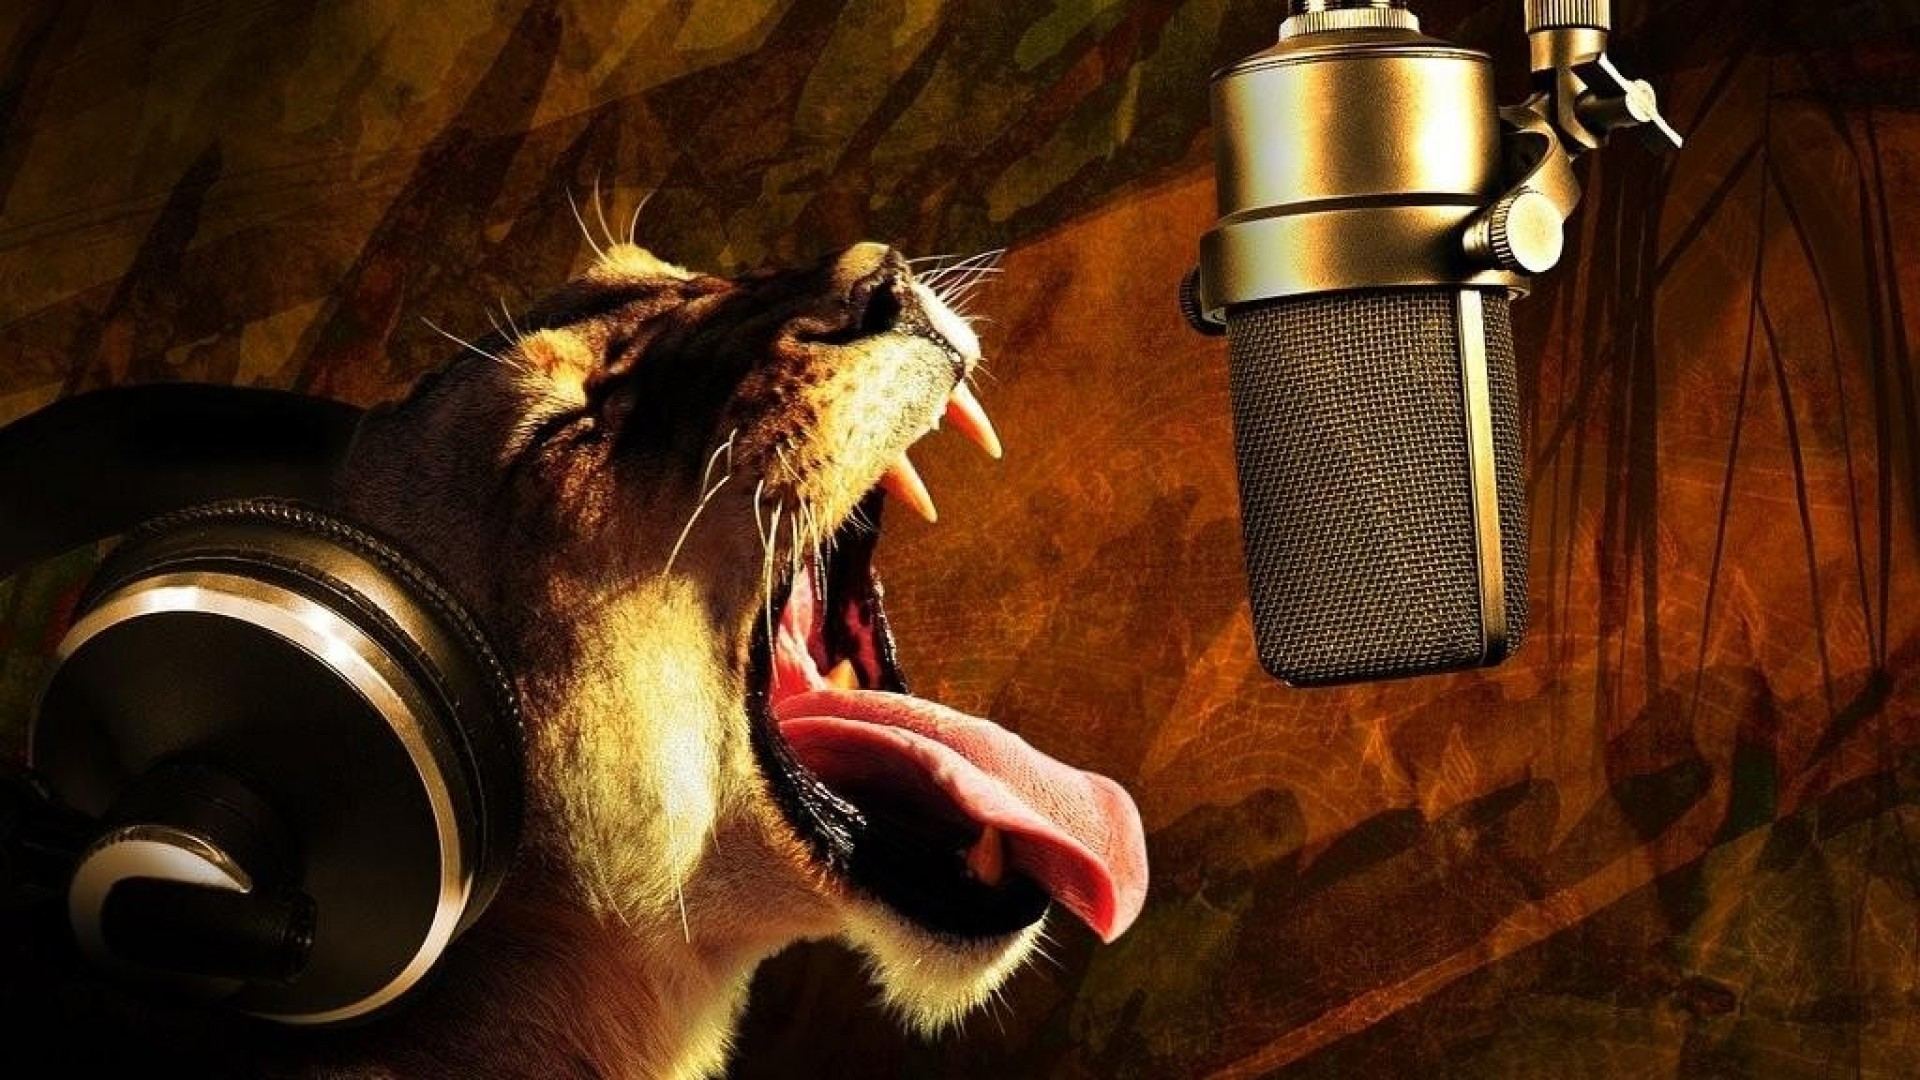 Hd Animal Wallpapers Hd Music Wallpapers: Awesome Music Wallpapers